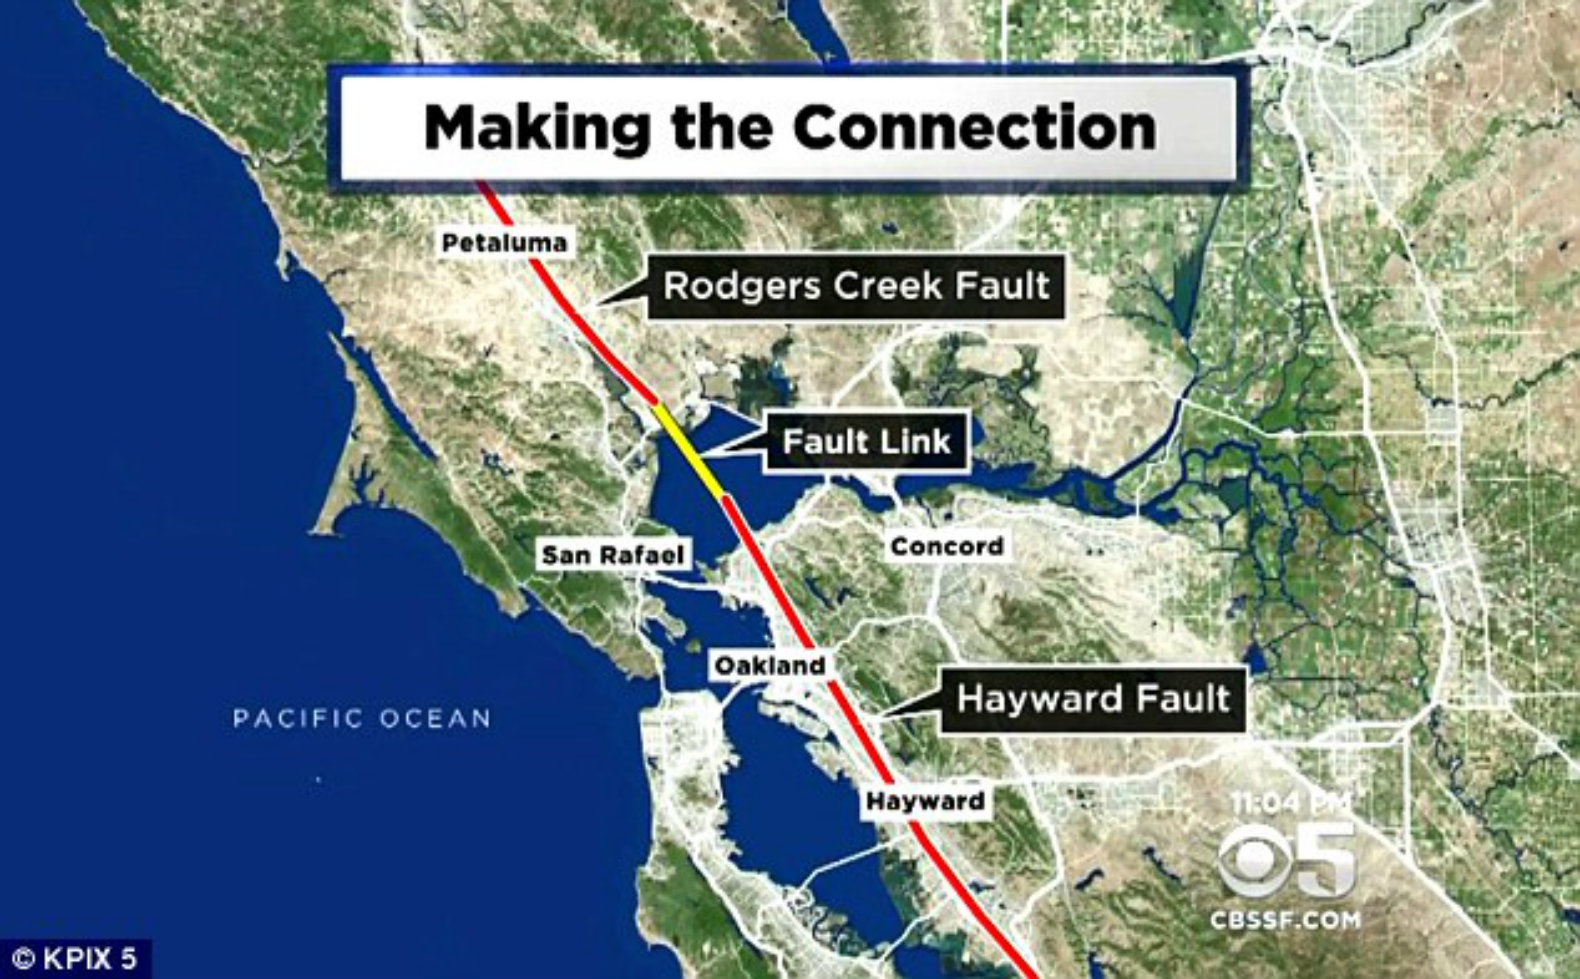 discovery bay california map with Alarming Research Reveals That Two Of The Countrys Most Dangerous Fault Lines May Be Connected on Sanjose furthermore Alarming Research Reveals That Two Of The Countrys Most Dangerous Fault Lines May Be Connected besides MapsSilkRoutesTrade together with 6WFG Great America Santa Clara California in addition Water in sri lanka.